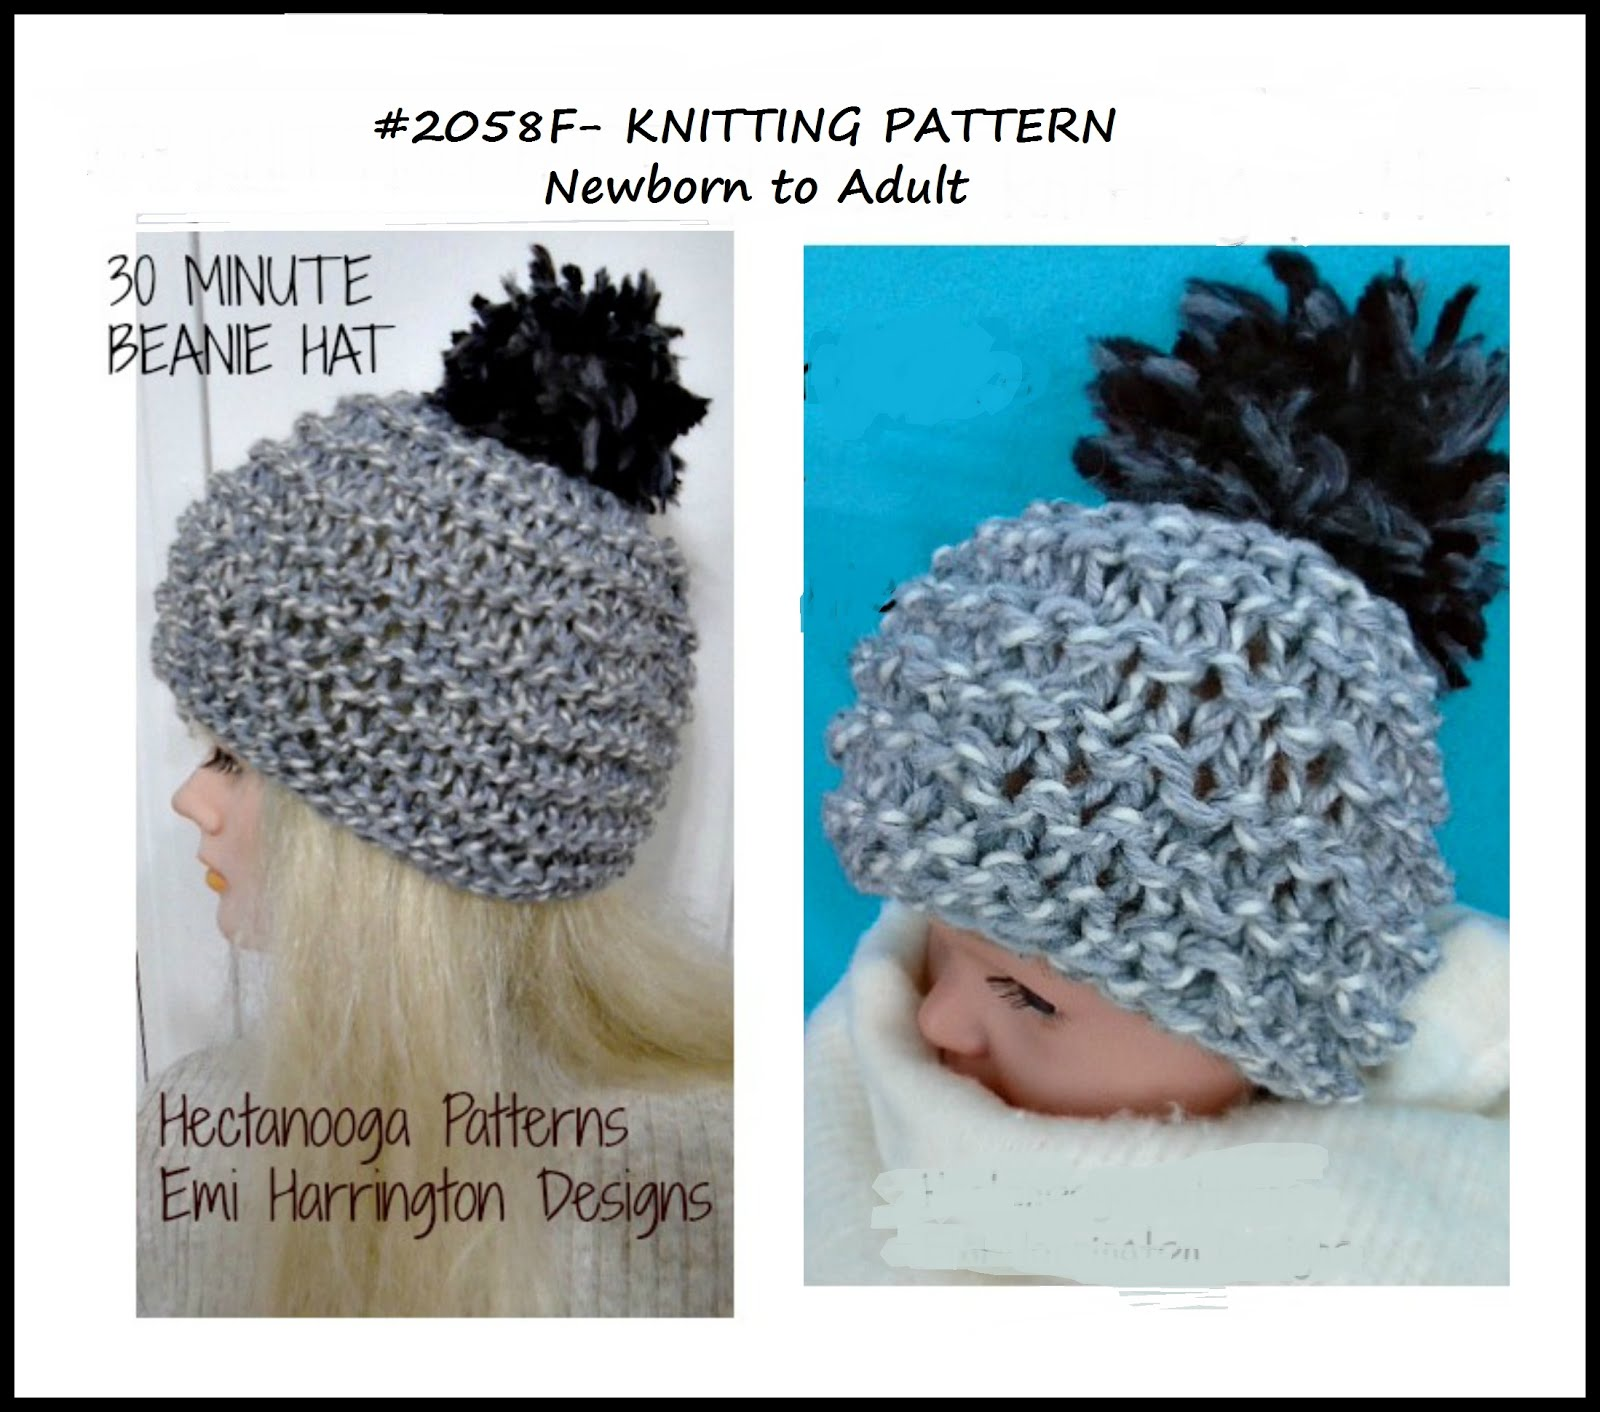 Hectanooga patterns free knitting pattern 30 minute beanie hat if you have questions about this pattern you may email me at mehartgallerygmail bankloansurffo Choice Image